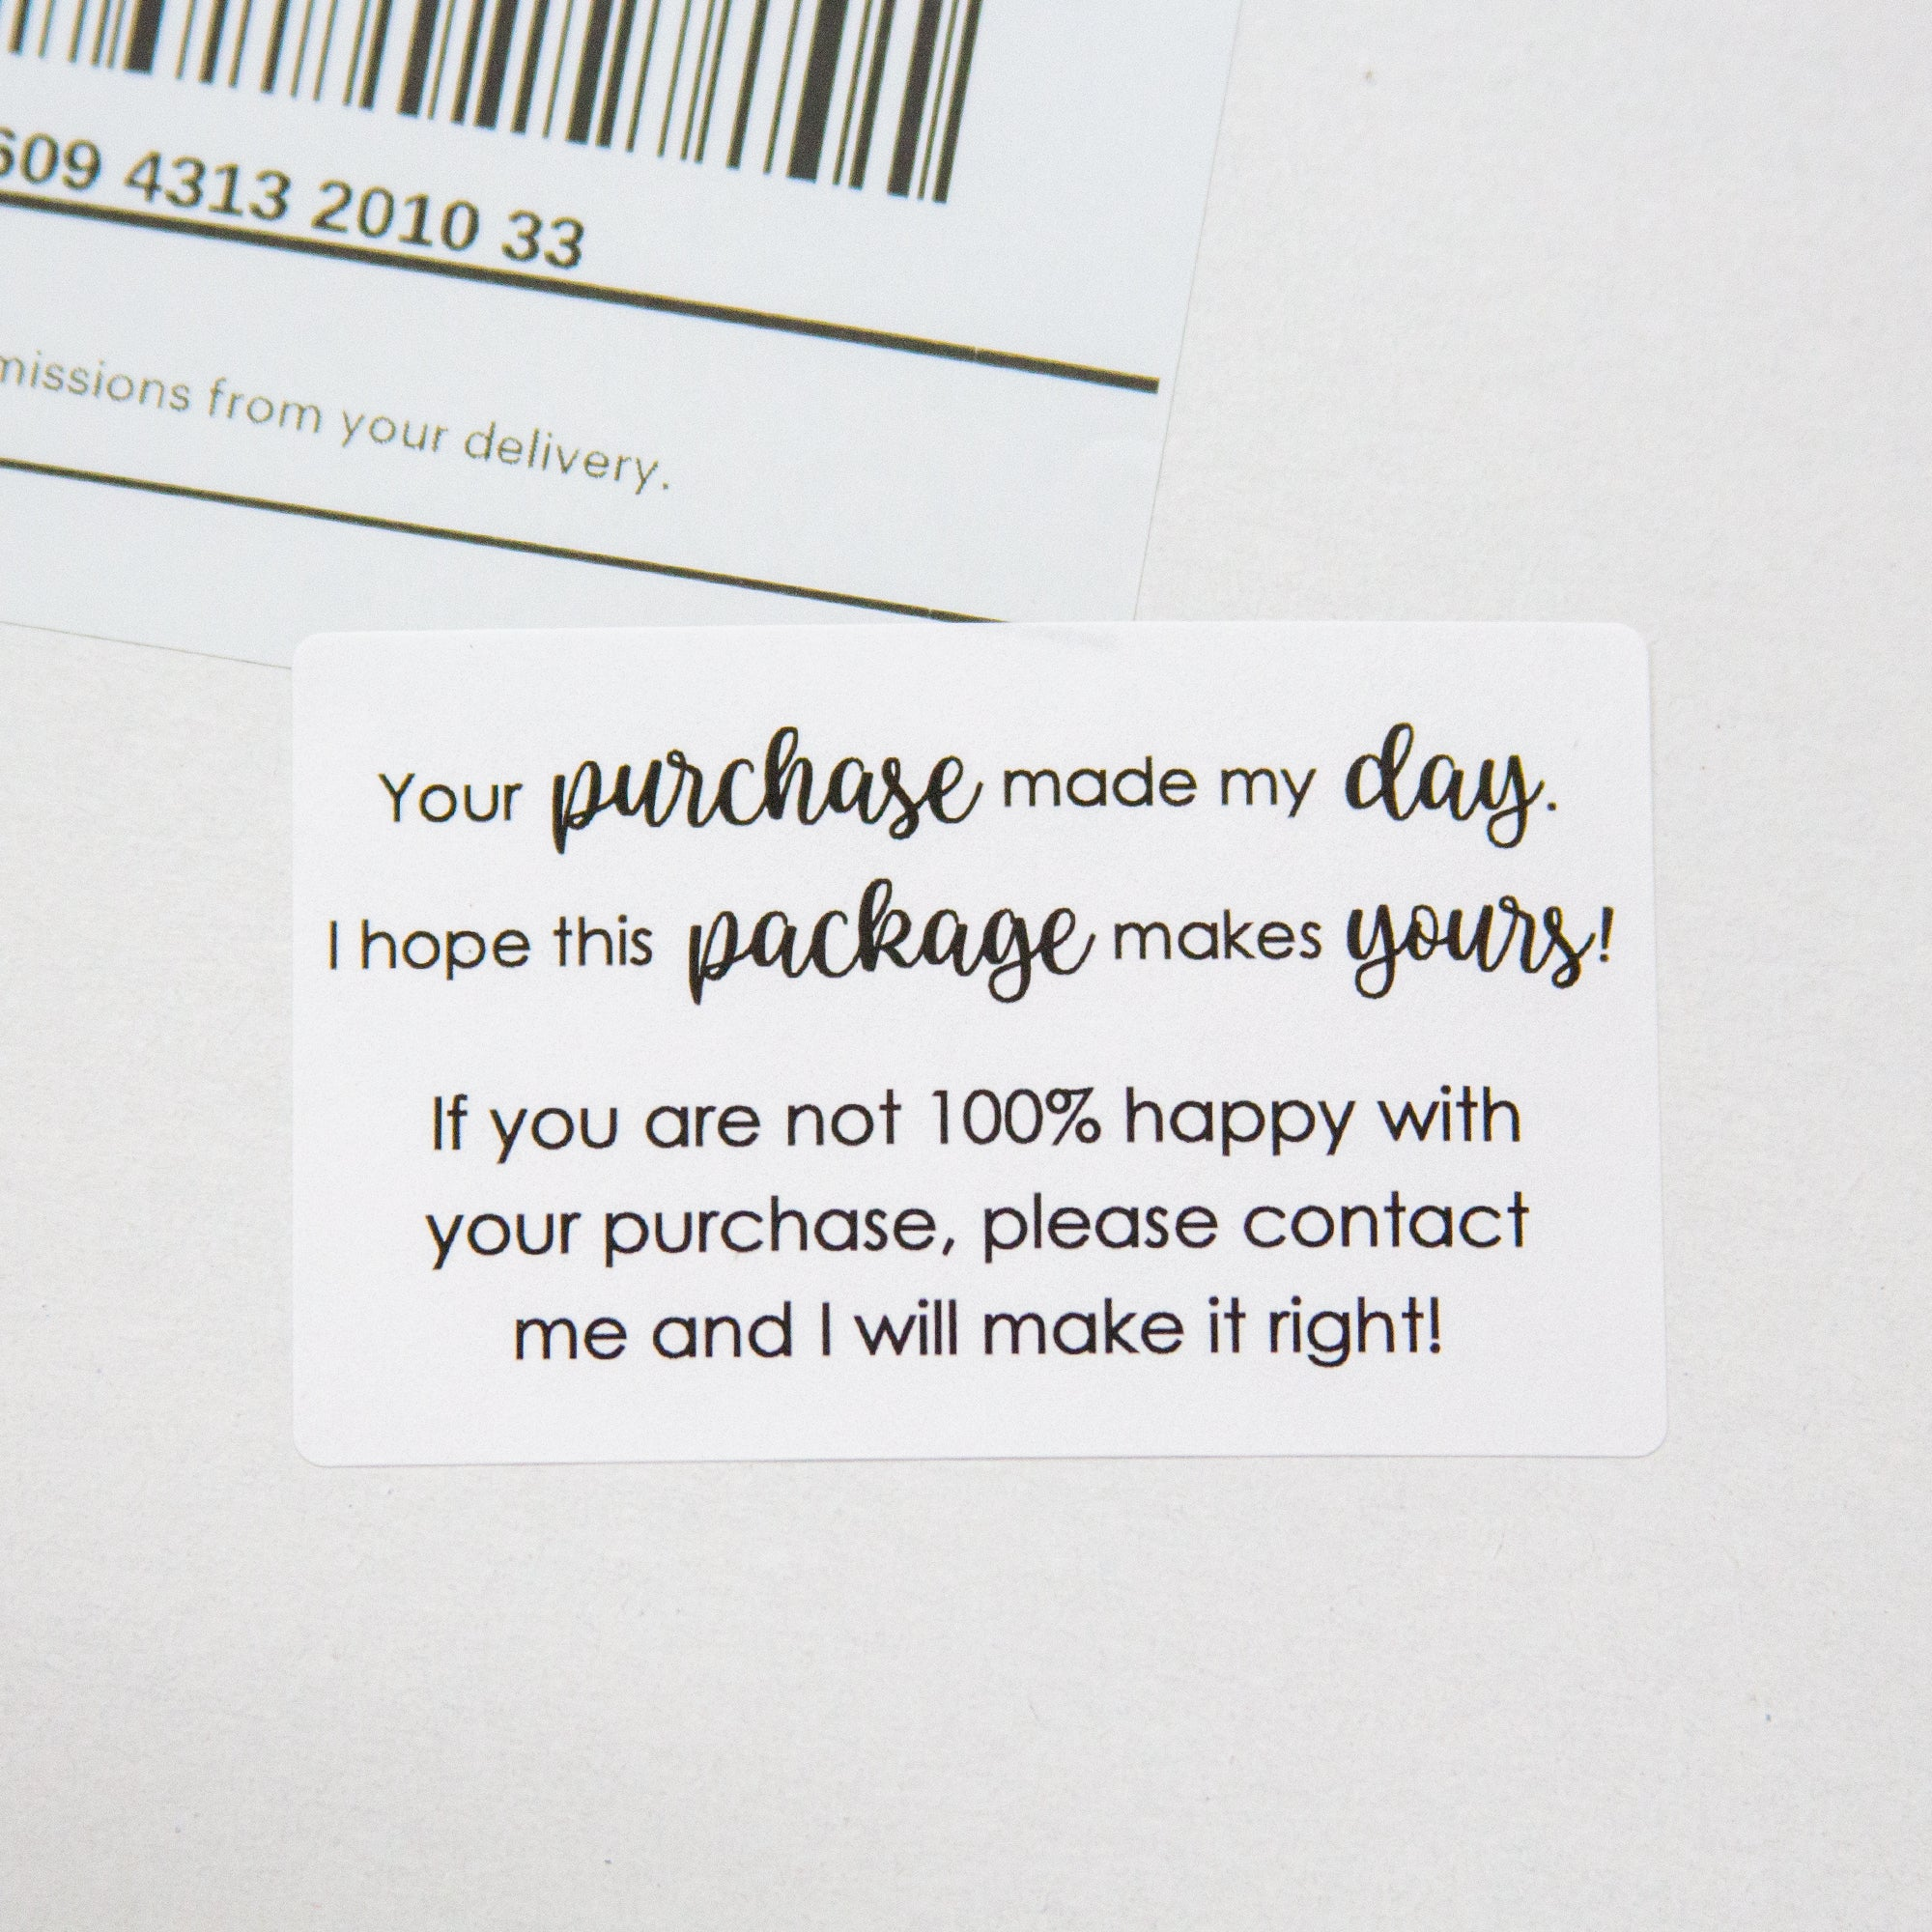 Your purchase made my day stickers - Customer Service Stickers - 90 Pieces